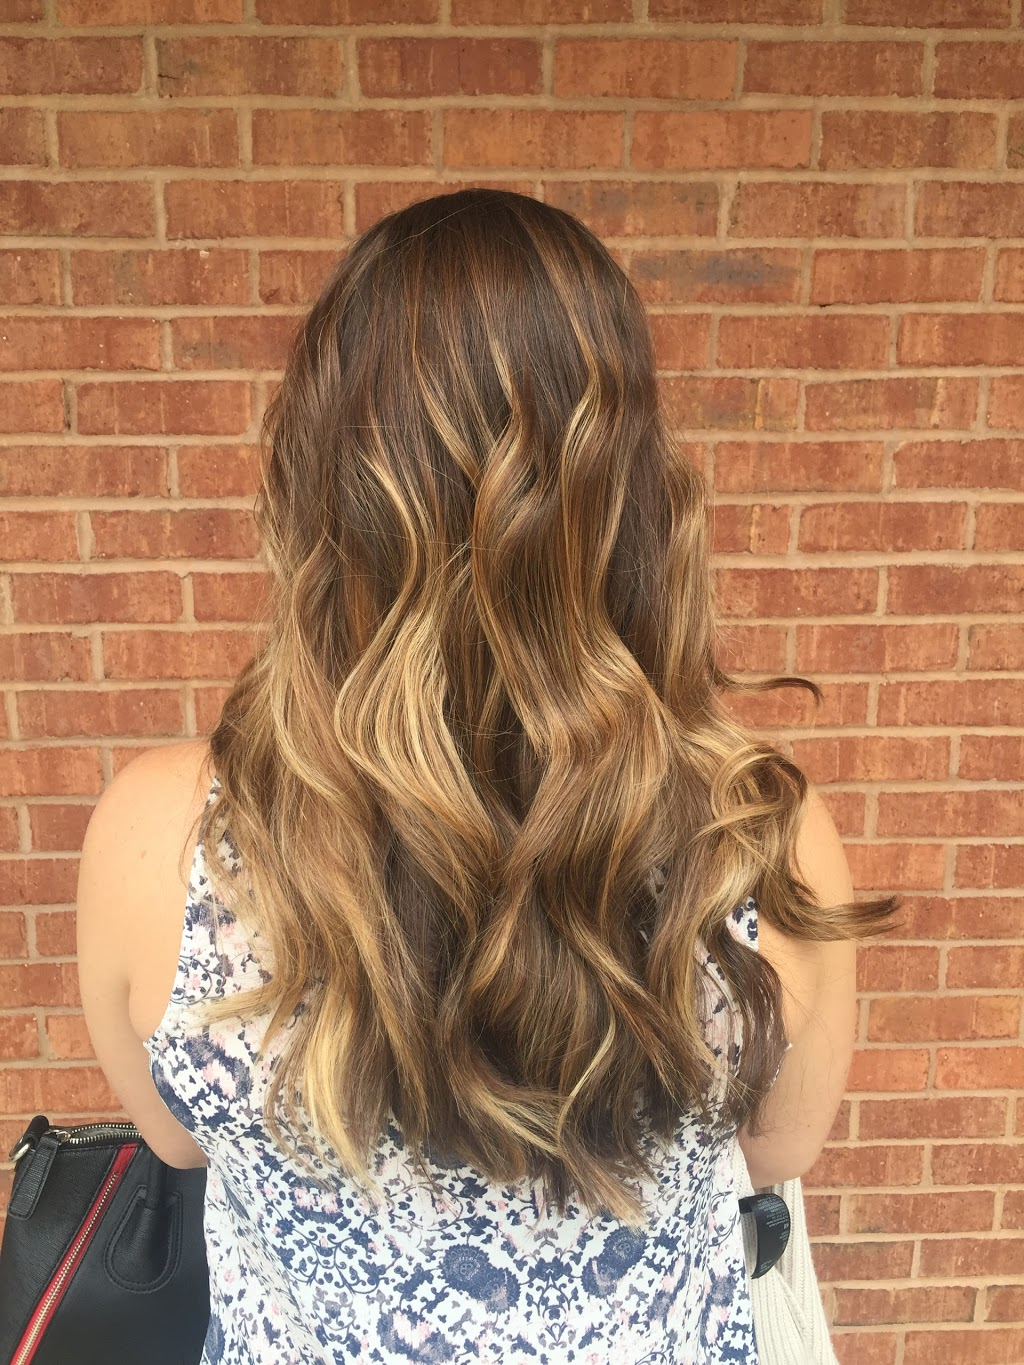 fifth and mae salons - hair care  | Photo 8 of 10 | Address: 880 Marietta Hwy Ste 600, Roswell, GA 30075, USA | Phone: (678) 381-2485